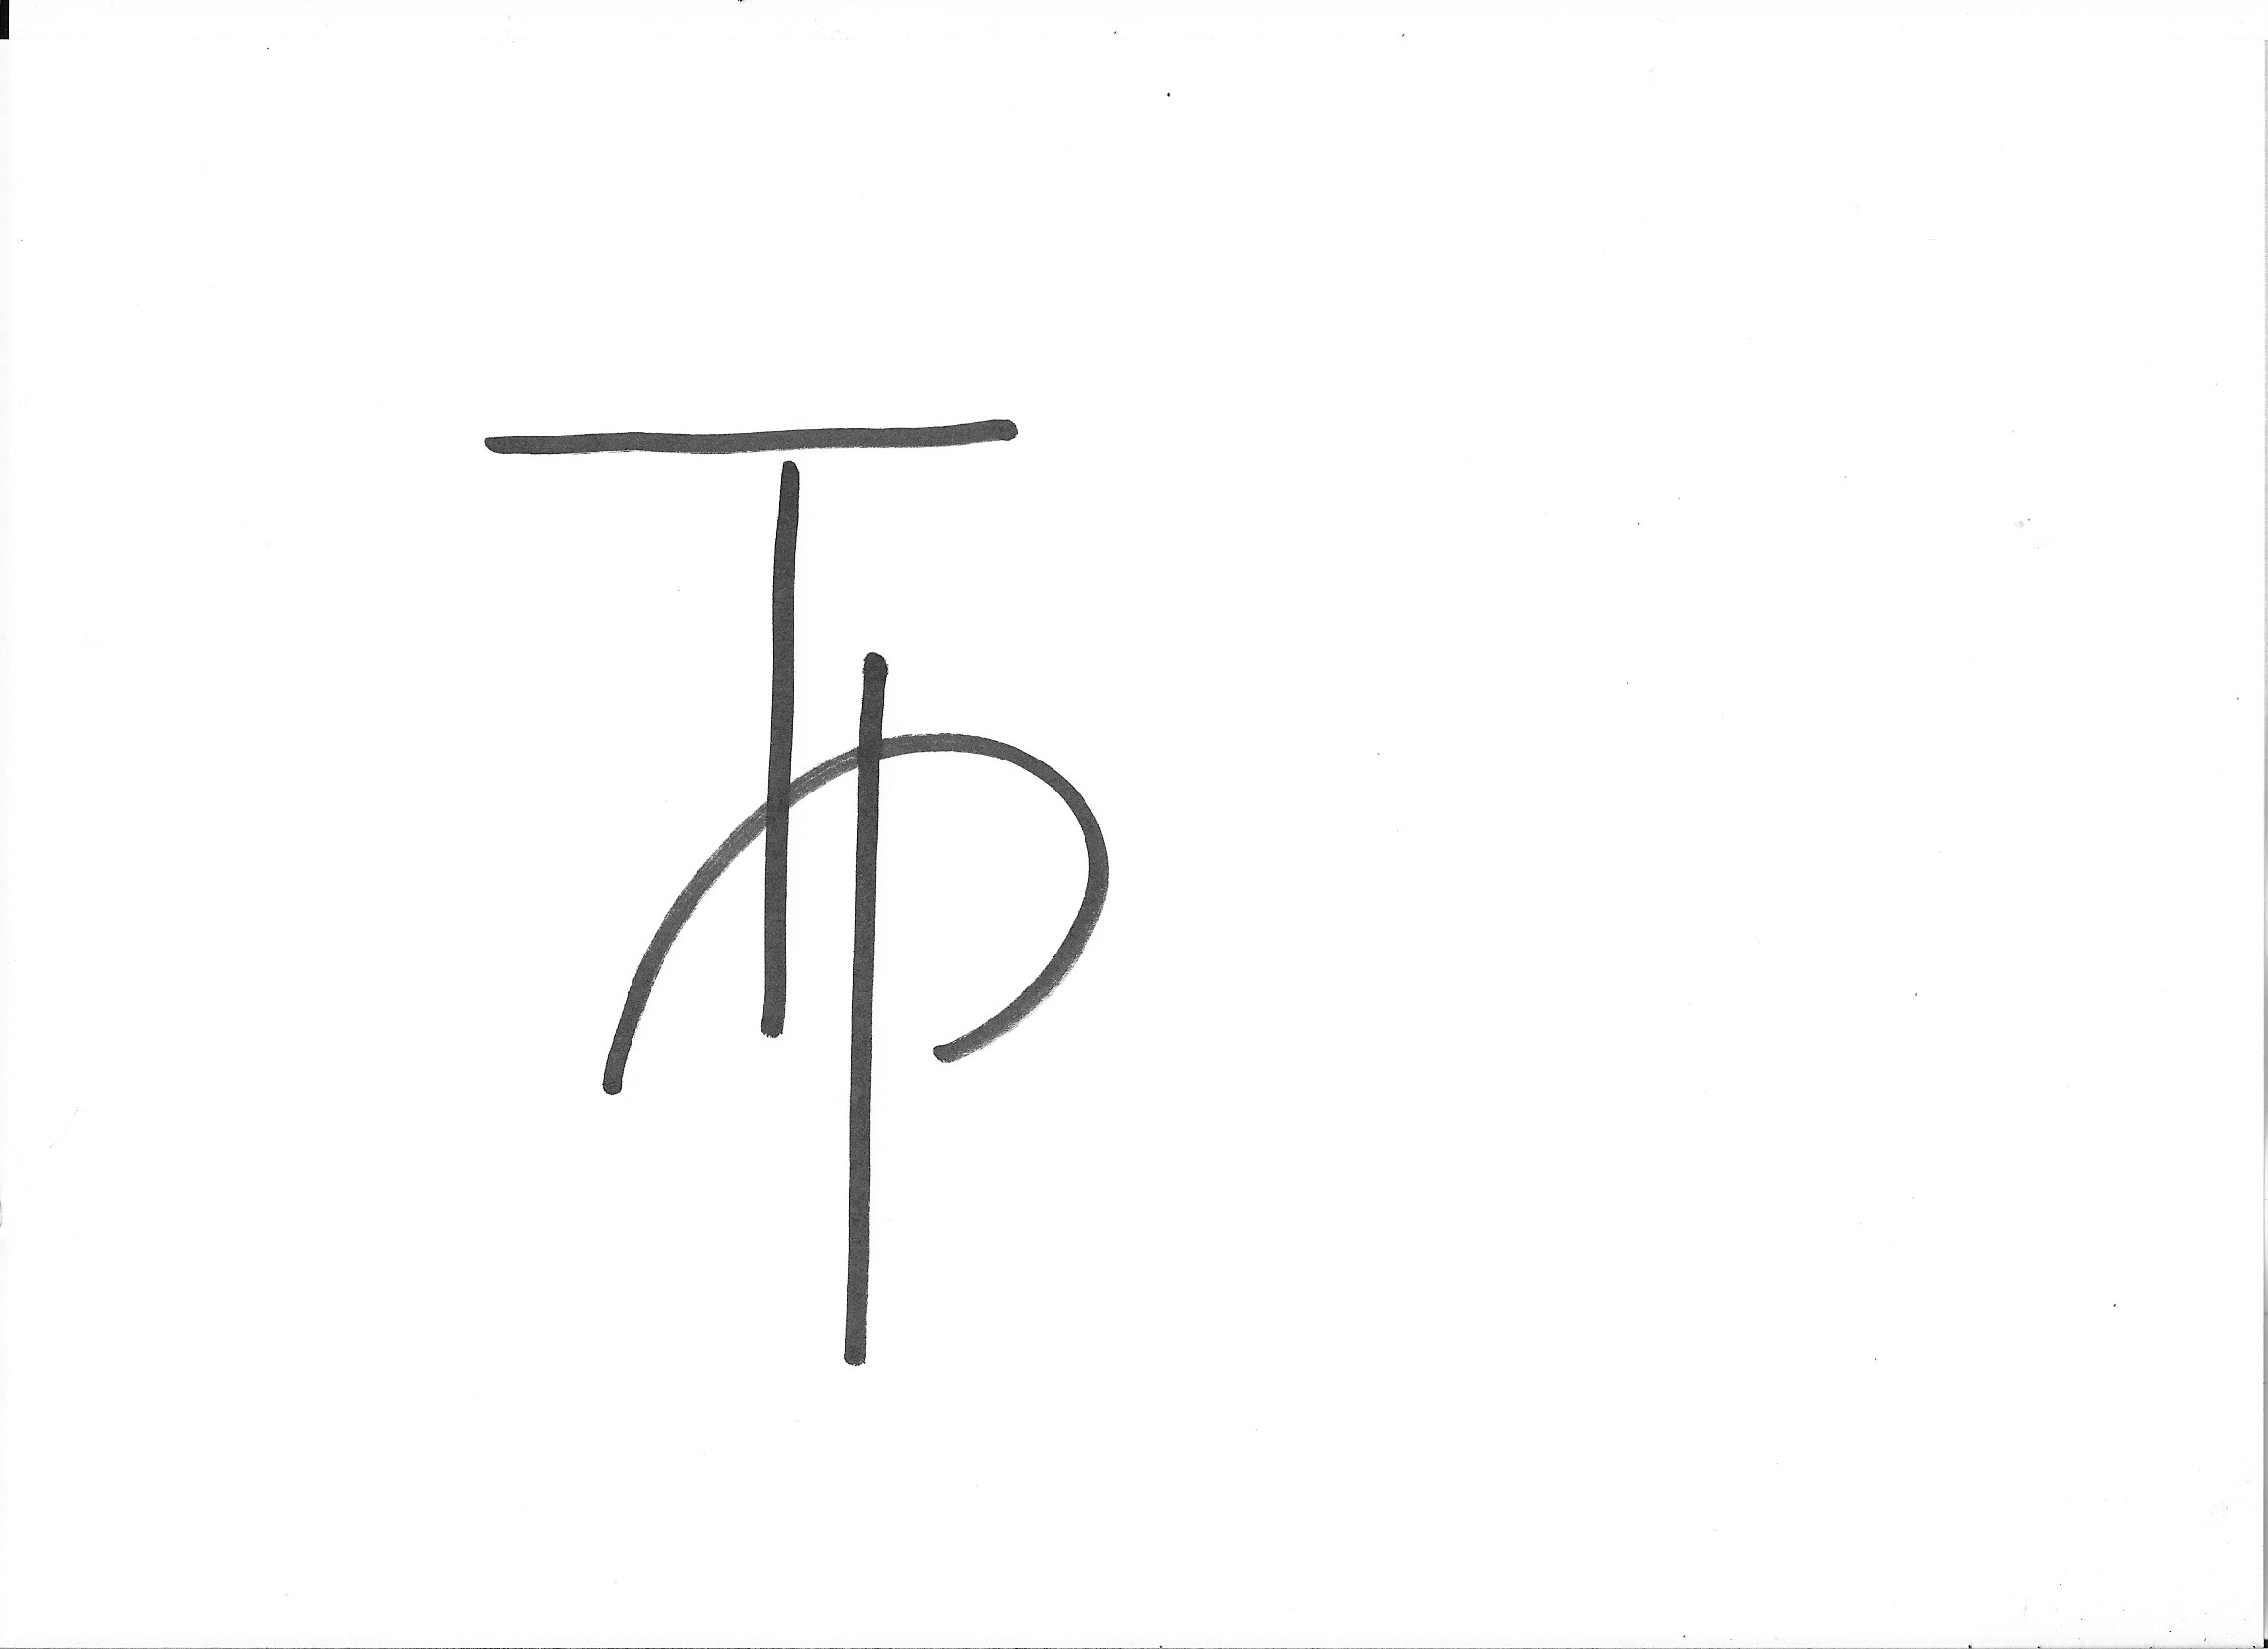 Tessa Peskett Signature